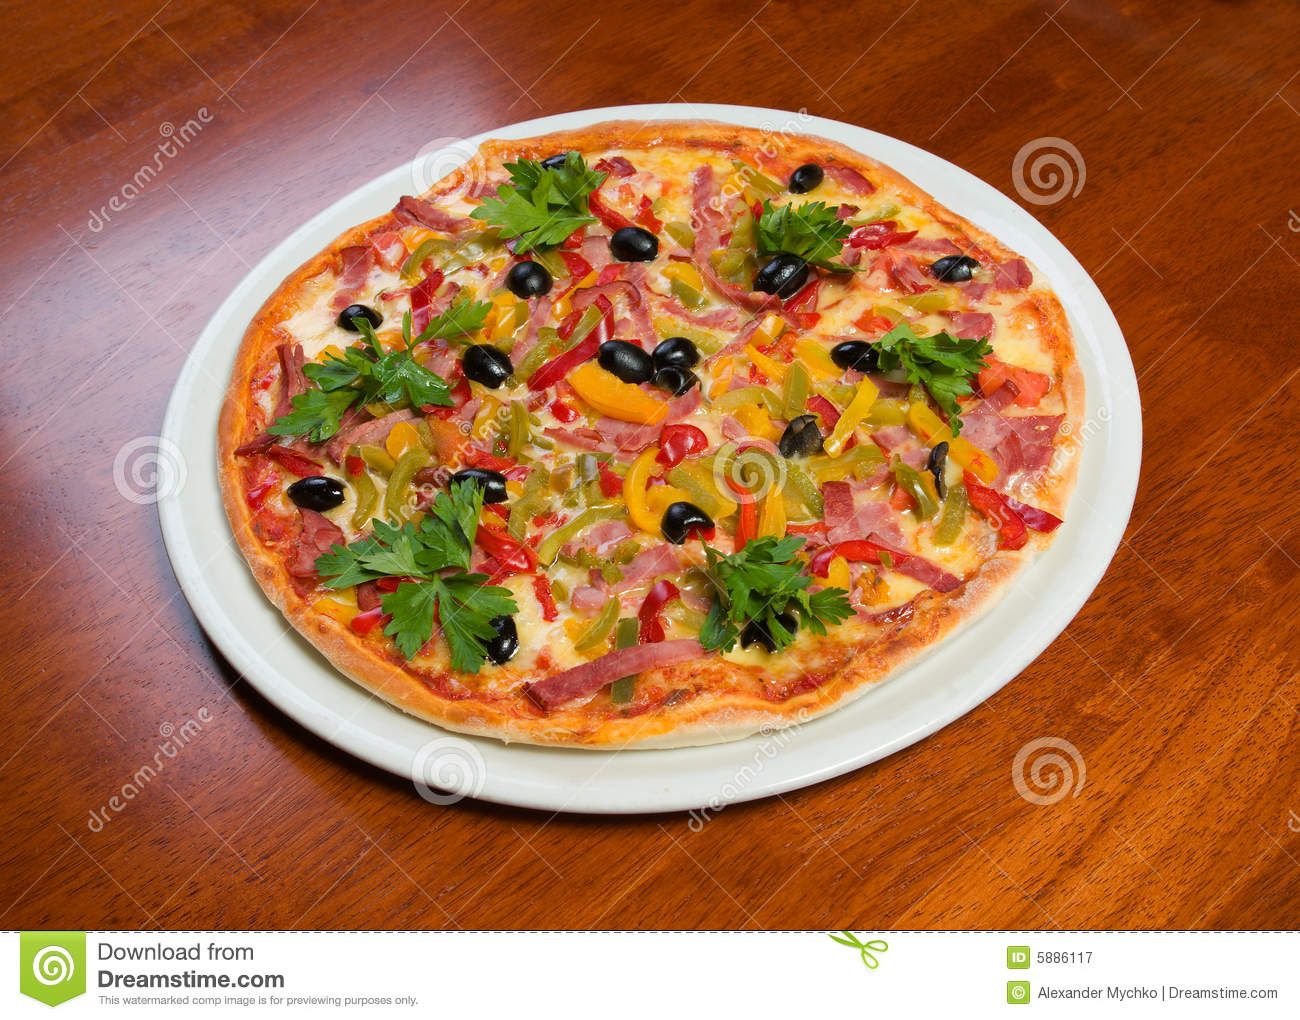 Supreme Pizza In Pan Royalty Free Stock Photography - Image: 5886117